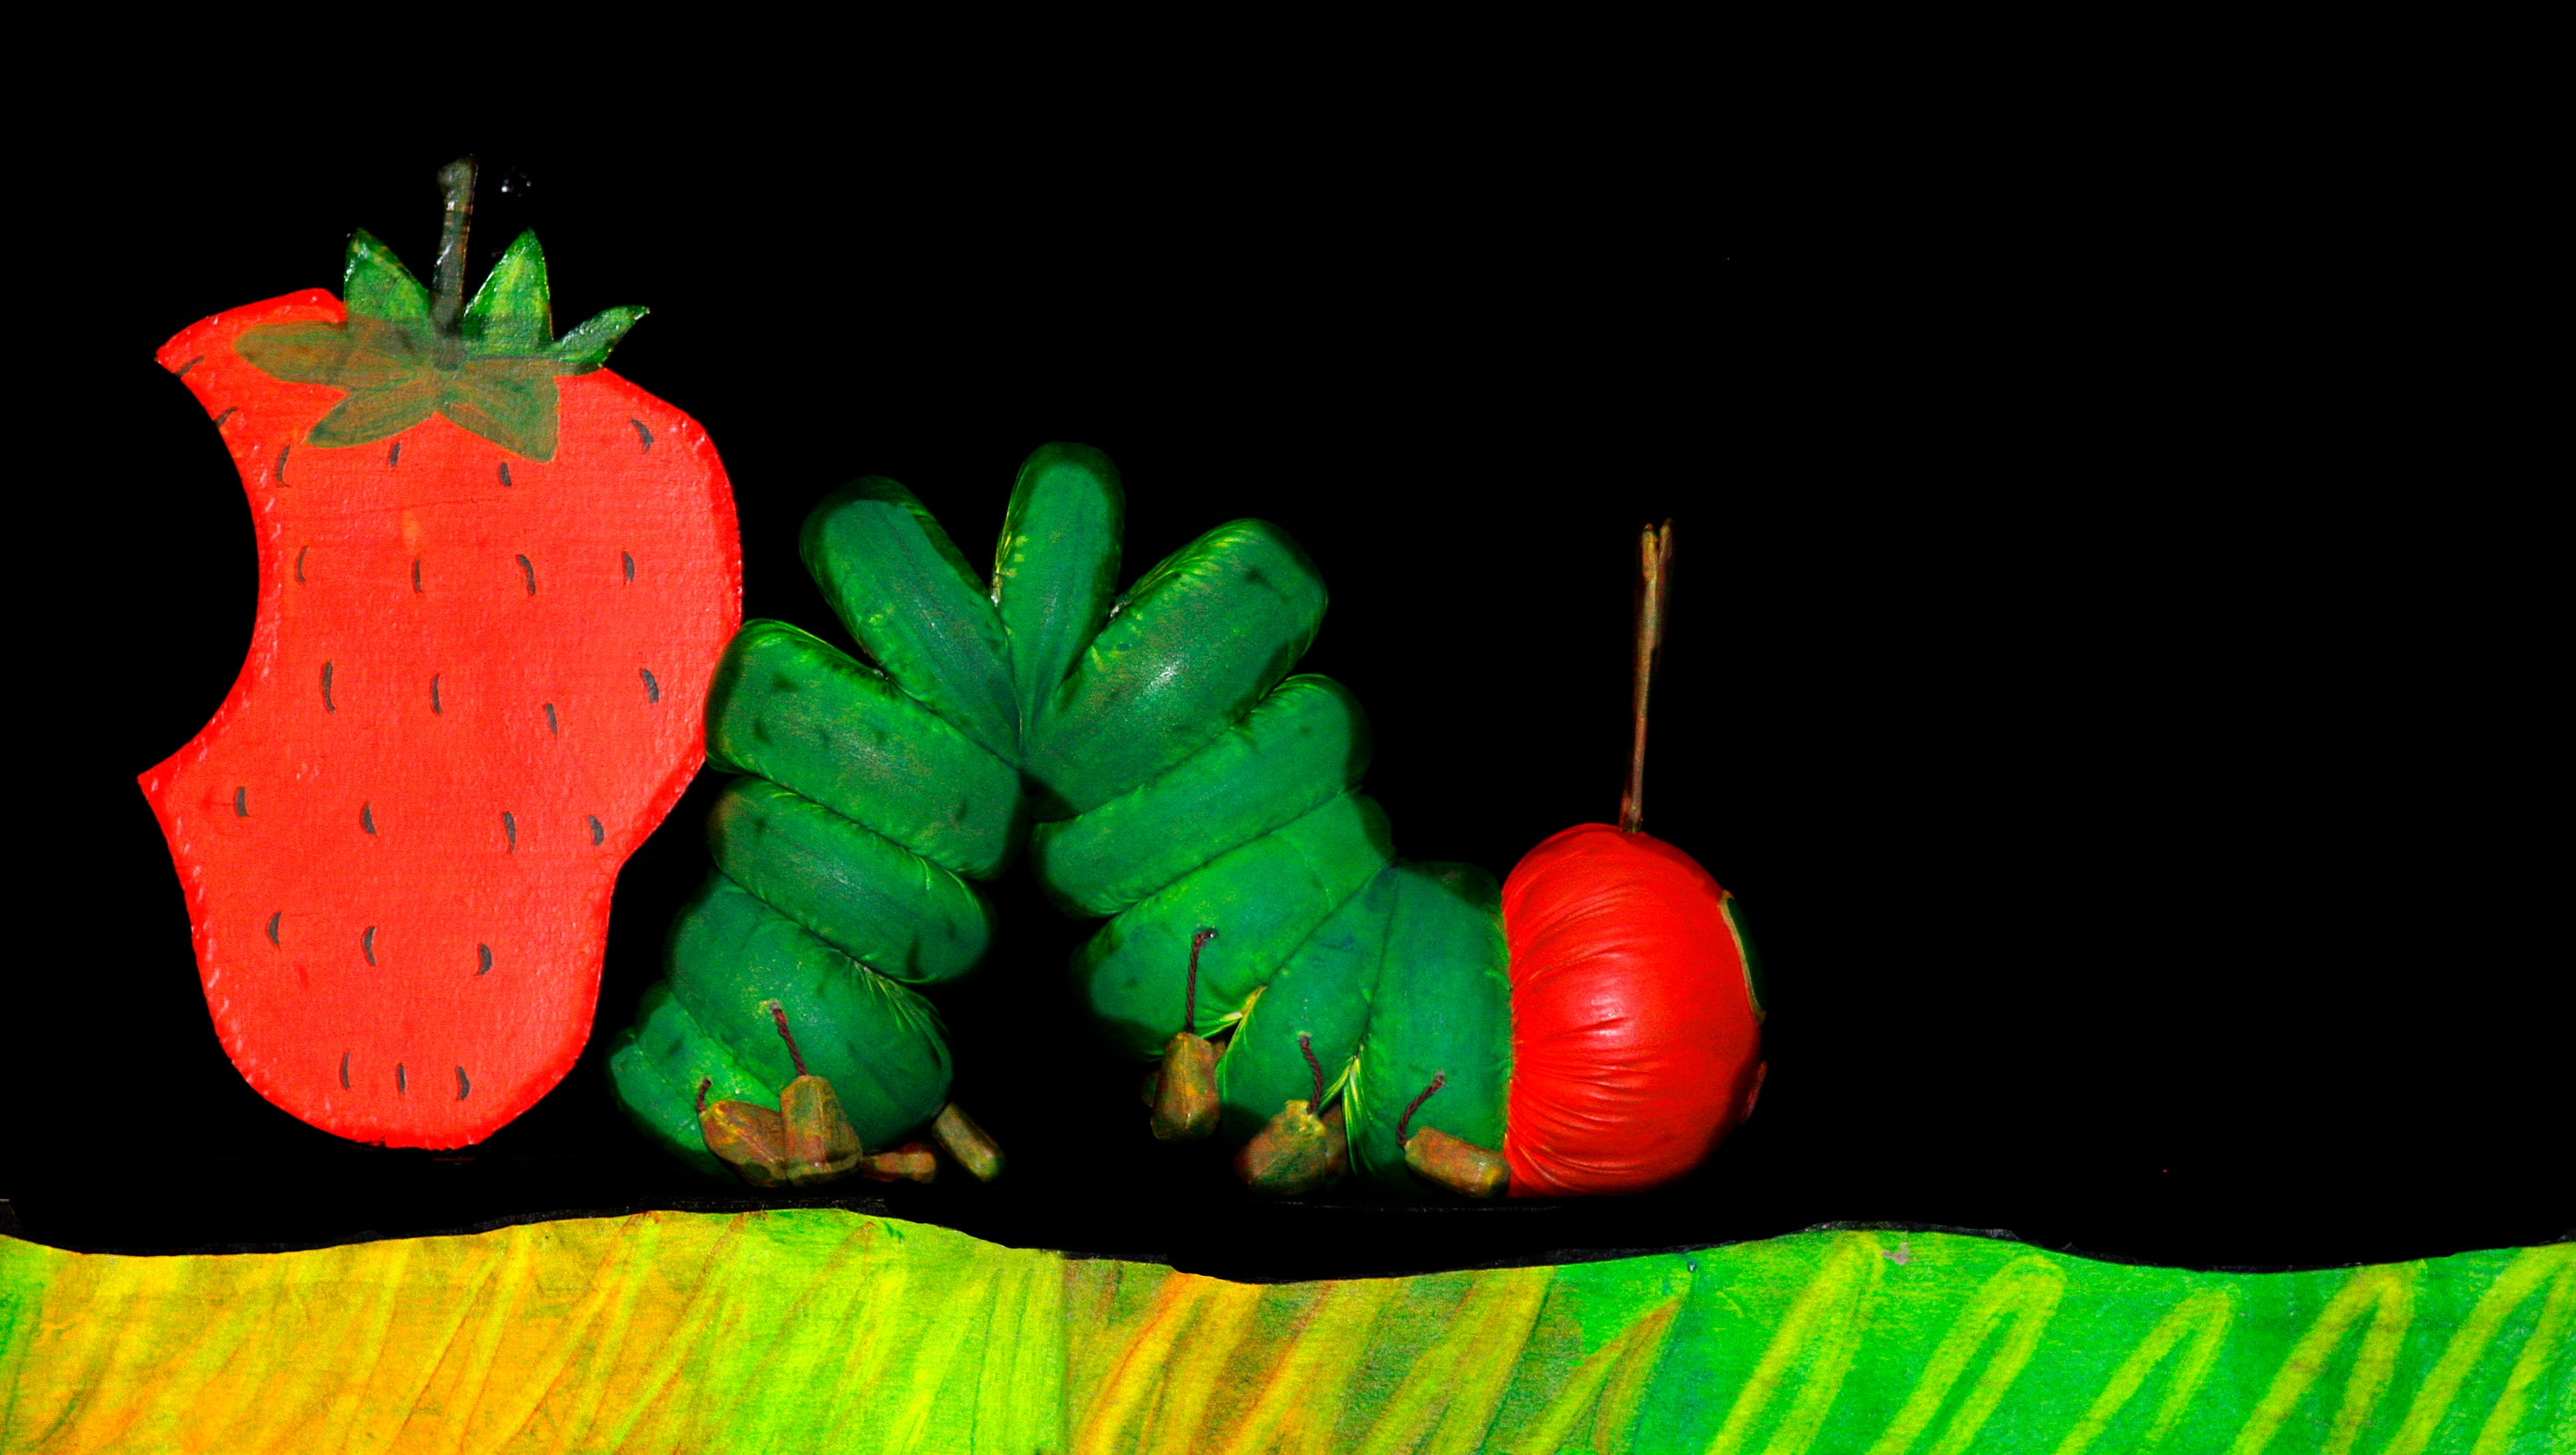 analysis of the very hungry caterpillar The very hungry caterpillar essays: over 180,000 the very hungry caterpillar essays, the very hungry caterpillar term papers, the very hungry caterpillar research paper, book reports 184 990 essays, term and research papers available for unlimited access.